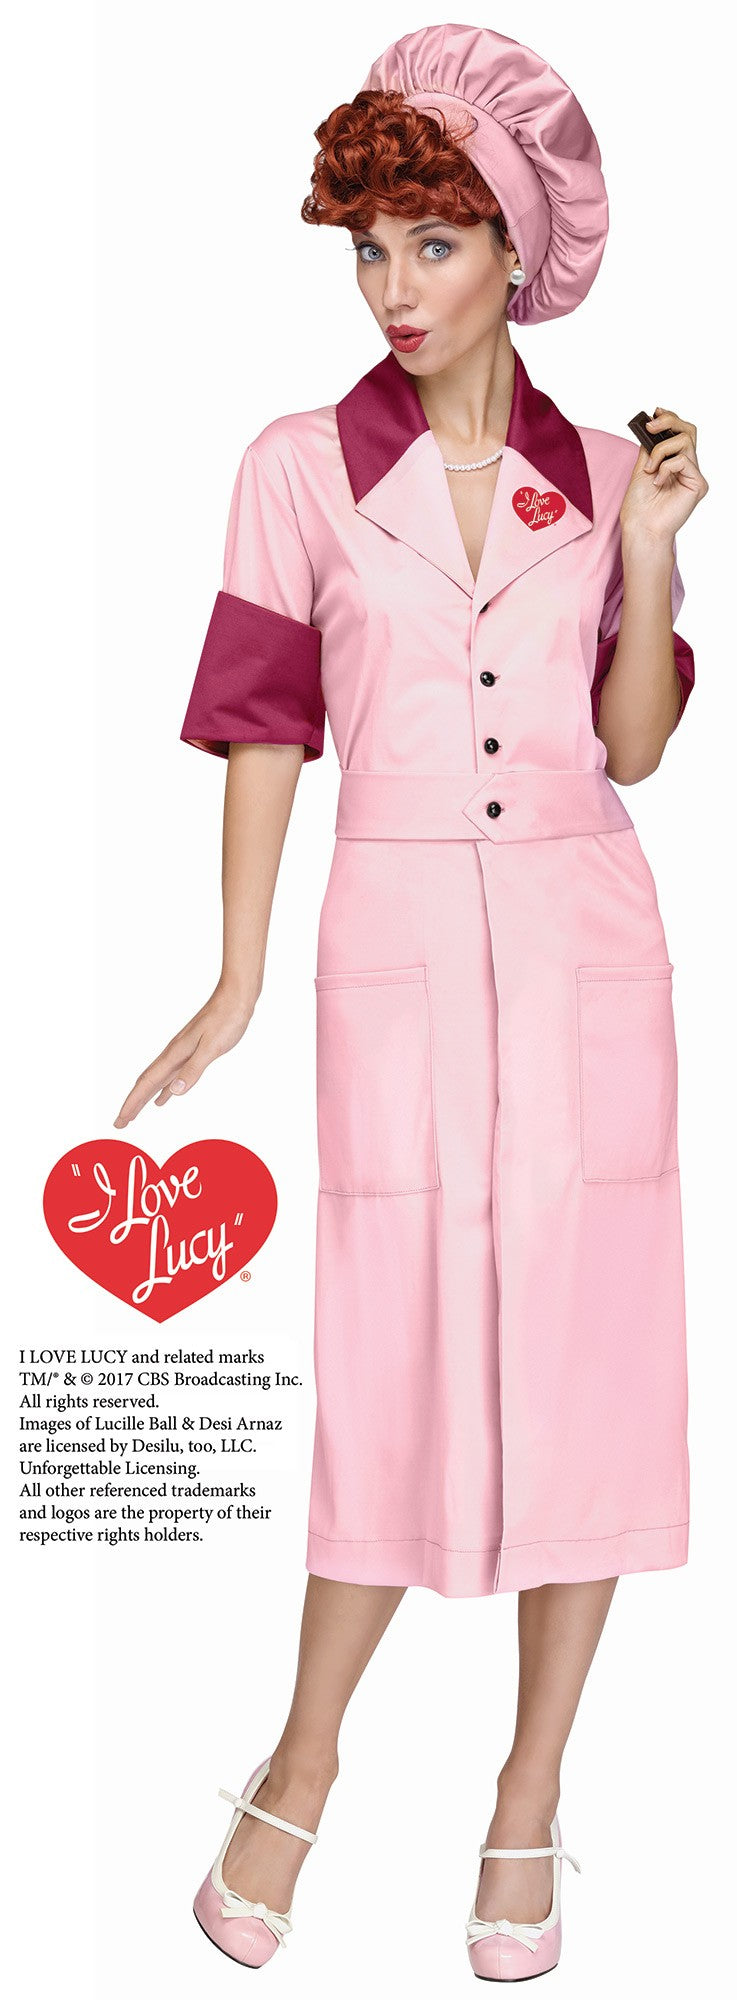 Lucyu0027s Candy Factory Costume  sc 1 st  Lucille Ball Desi Arnaz Museum & LUCY COSTUME | Lucille Ball Desi Arnaz Museum